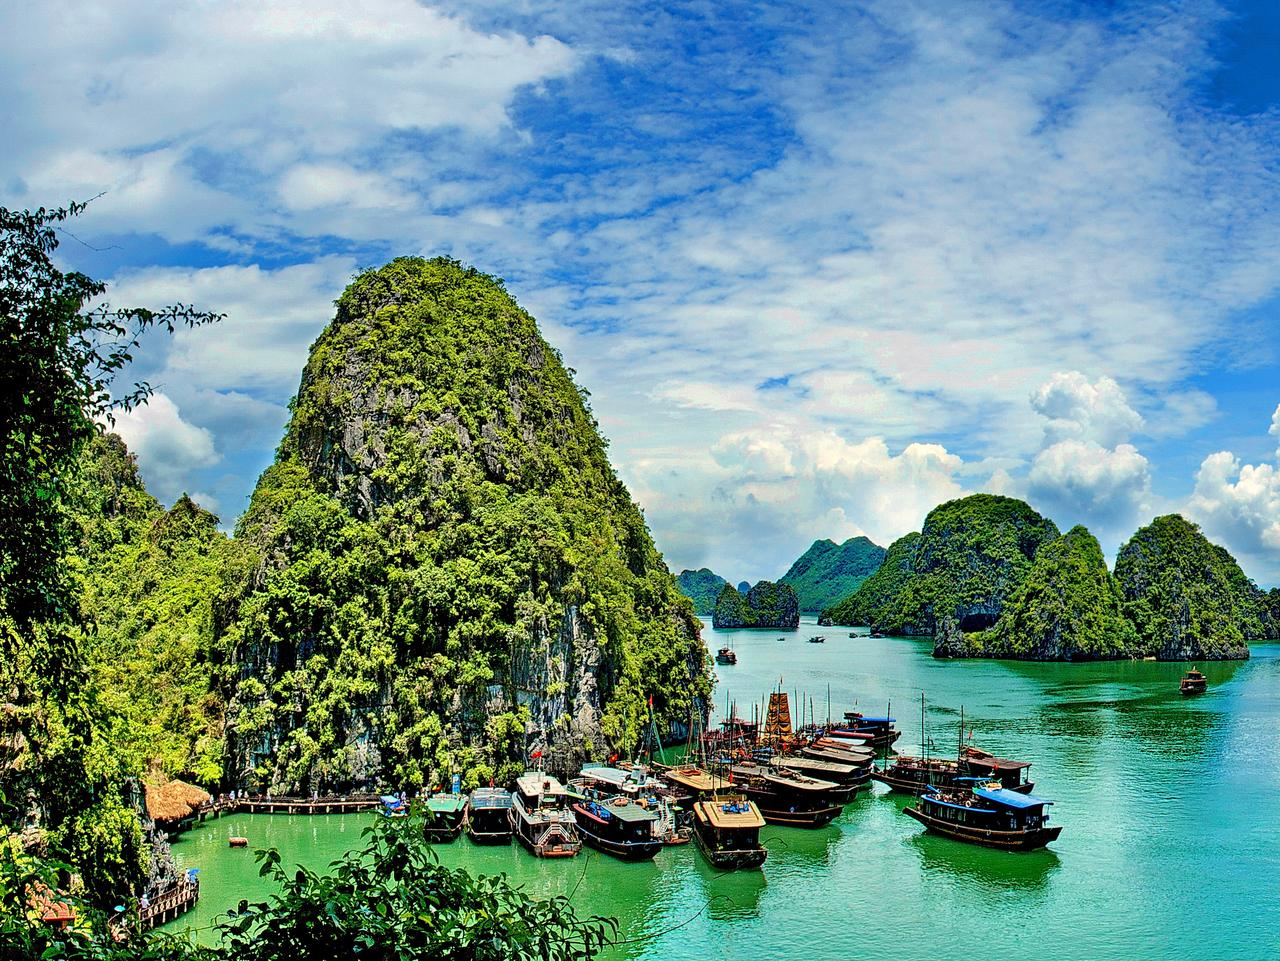 panorama on seascape with ships floats in a sea gulf Halong bay surrounded high mountains up on top from ocean water, direct rocks with green trees and cloudscape blue sky and clouds at sunny day, Ha Long Bay, Vietnam